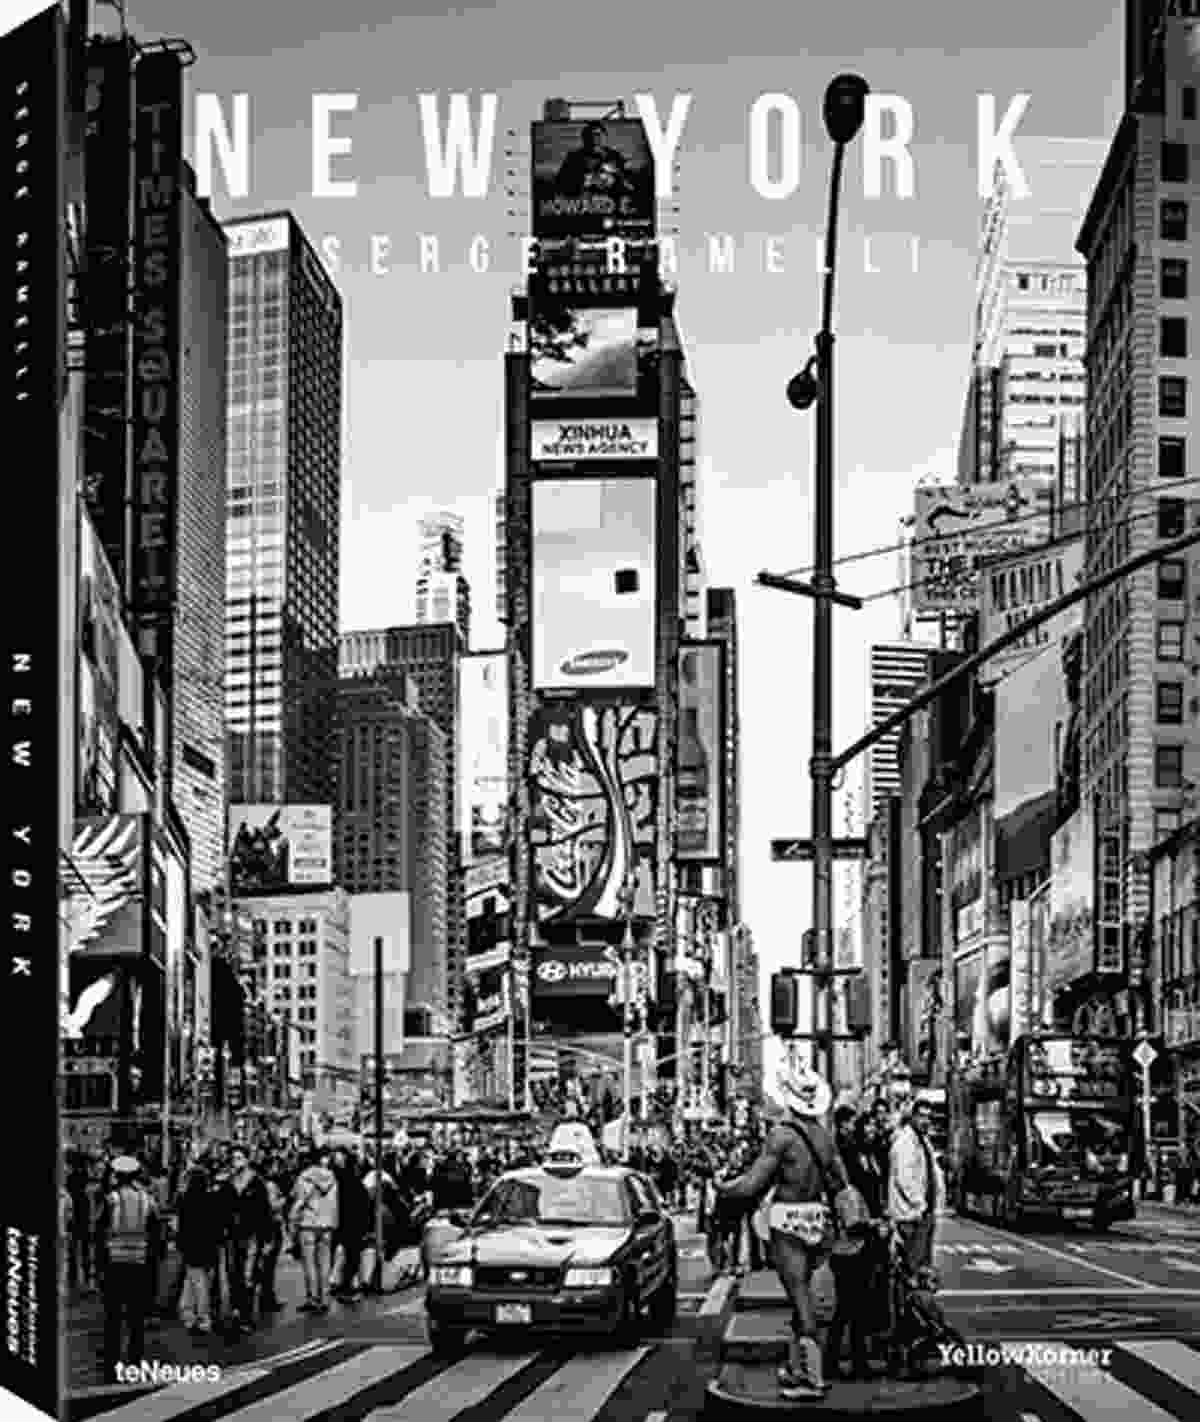 © New York by Serge Ramelli, SMALL FORMAT EDITION, published by teNeues, £ 12.50, www.teneues.com